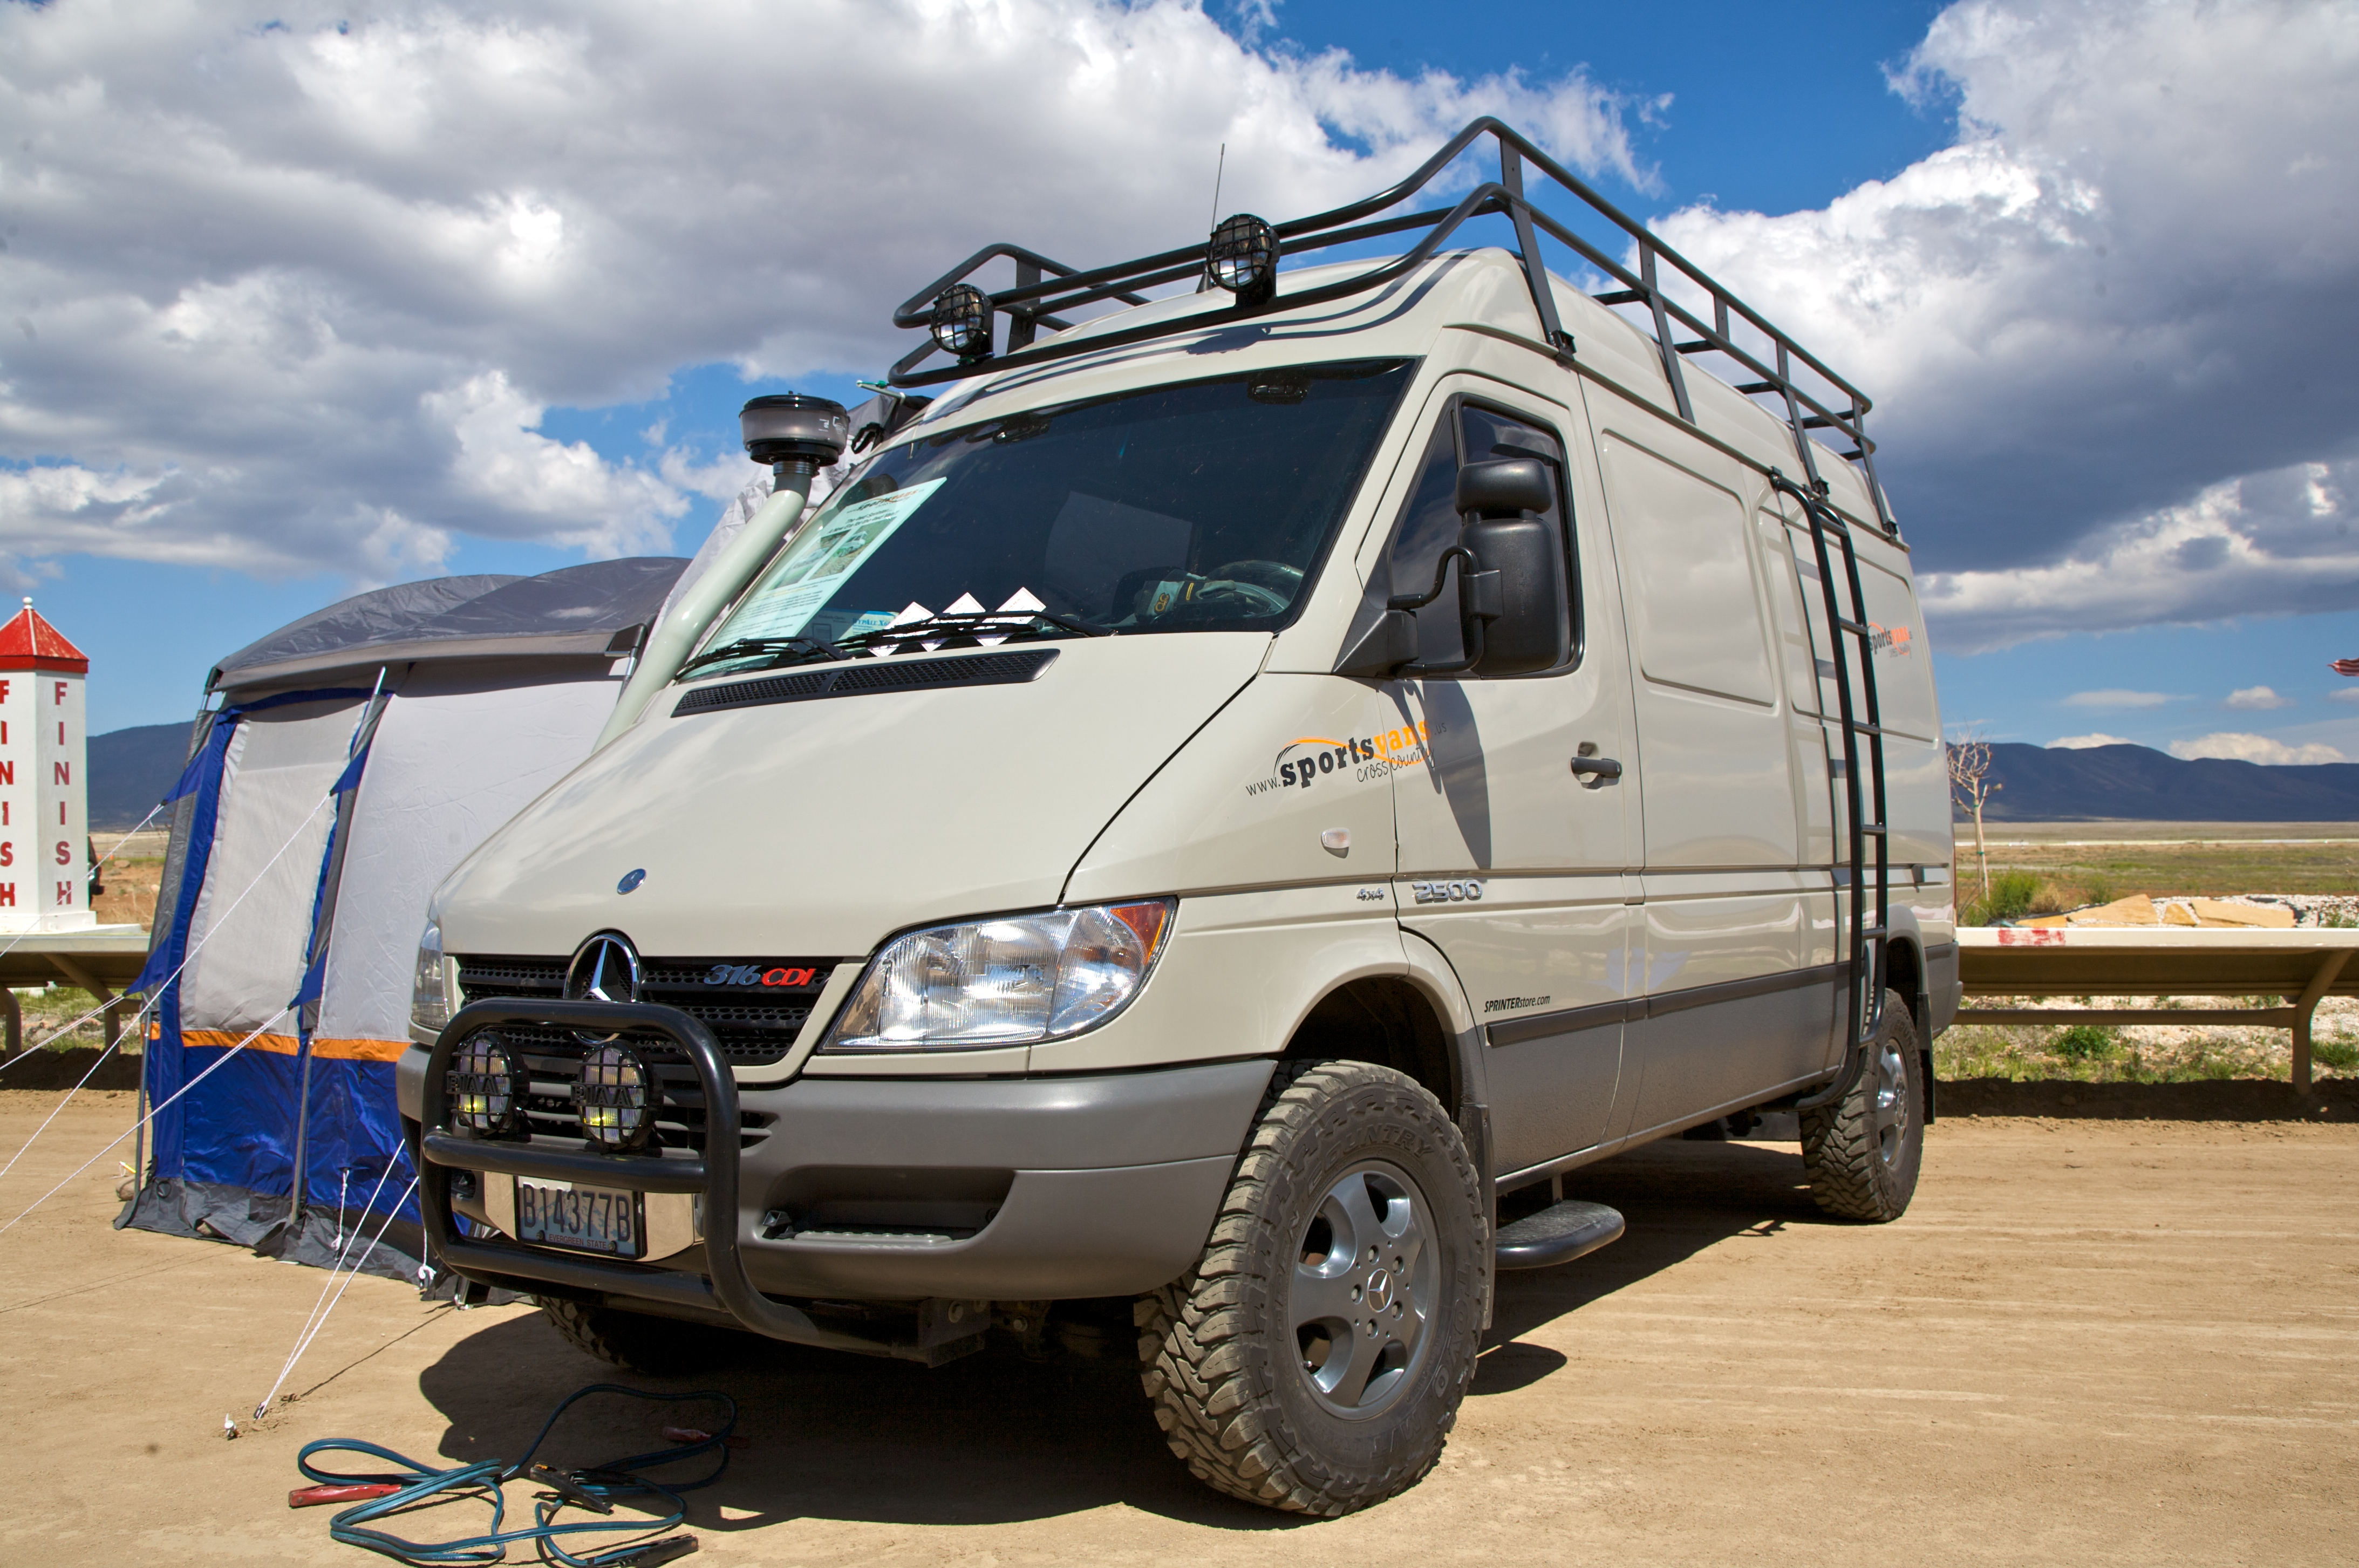 Filesprinter With A 4x4 Conversion Wikimedia Commons 2012 Sprinter Fuel Filter Location